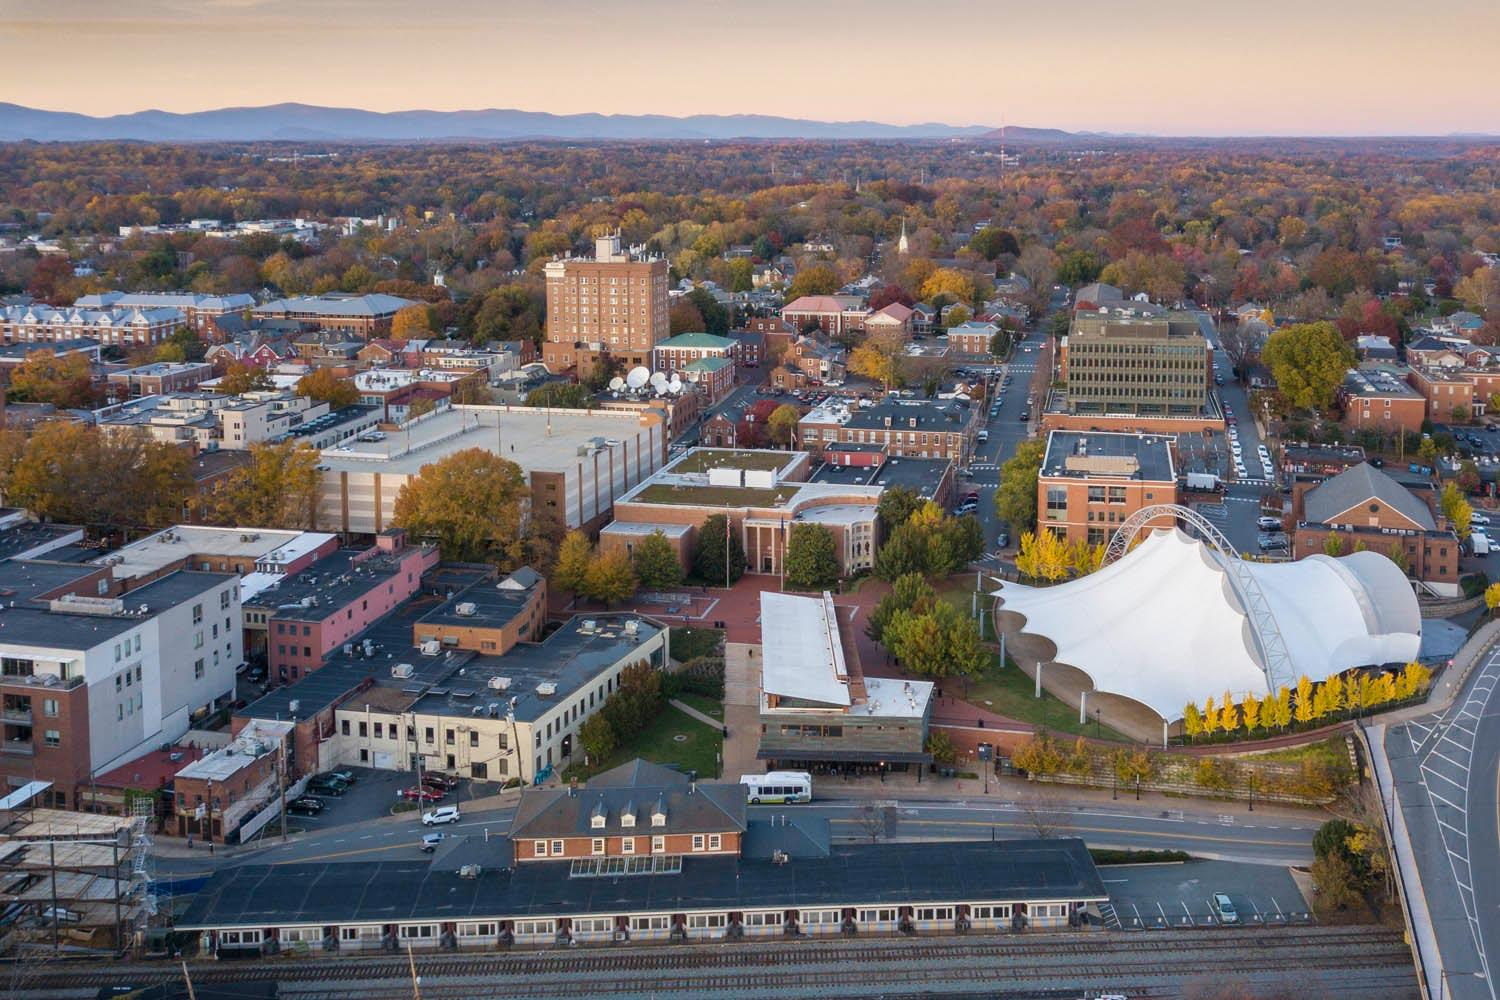 New Report Recommends Actions to Strengthen UVA's Ties to Community